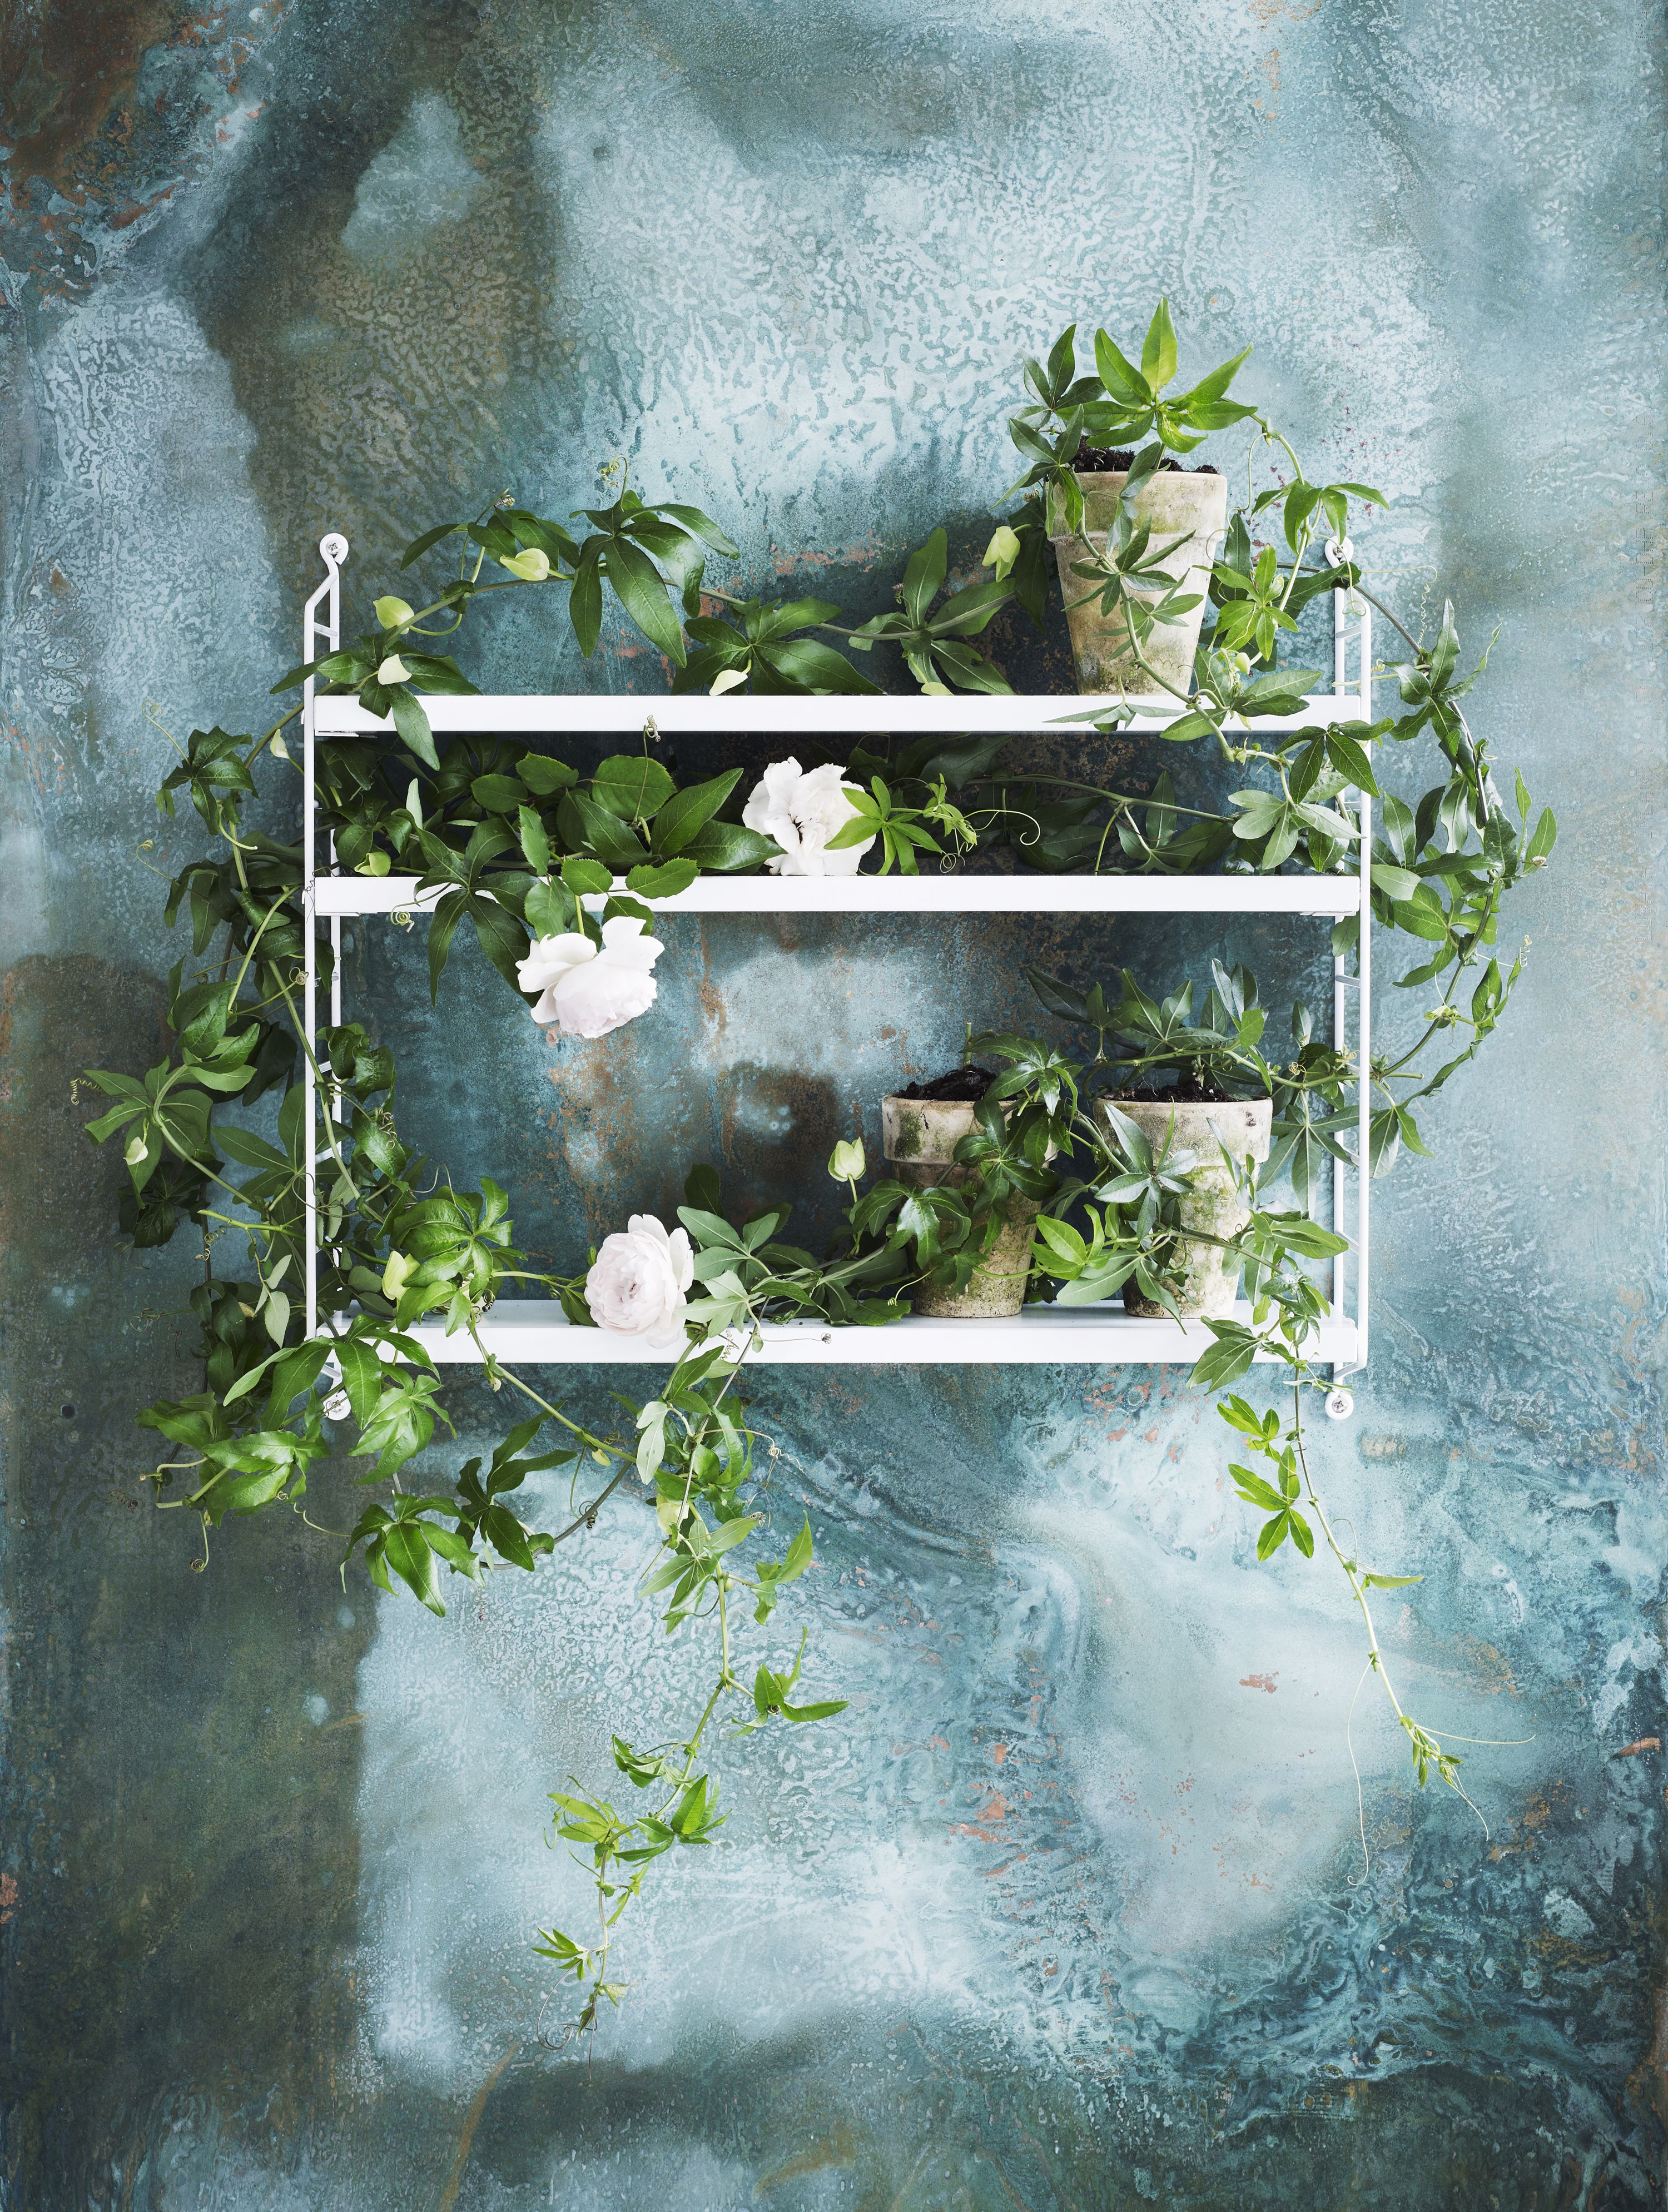 beautiful outside wall decoration with white trailing flowers (passionflower and camelias?)